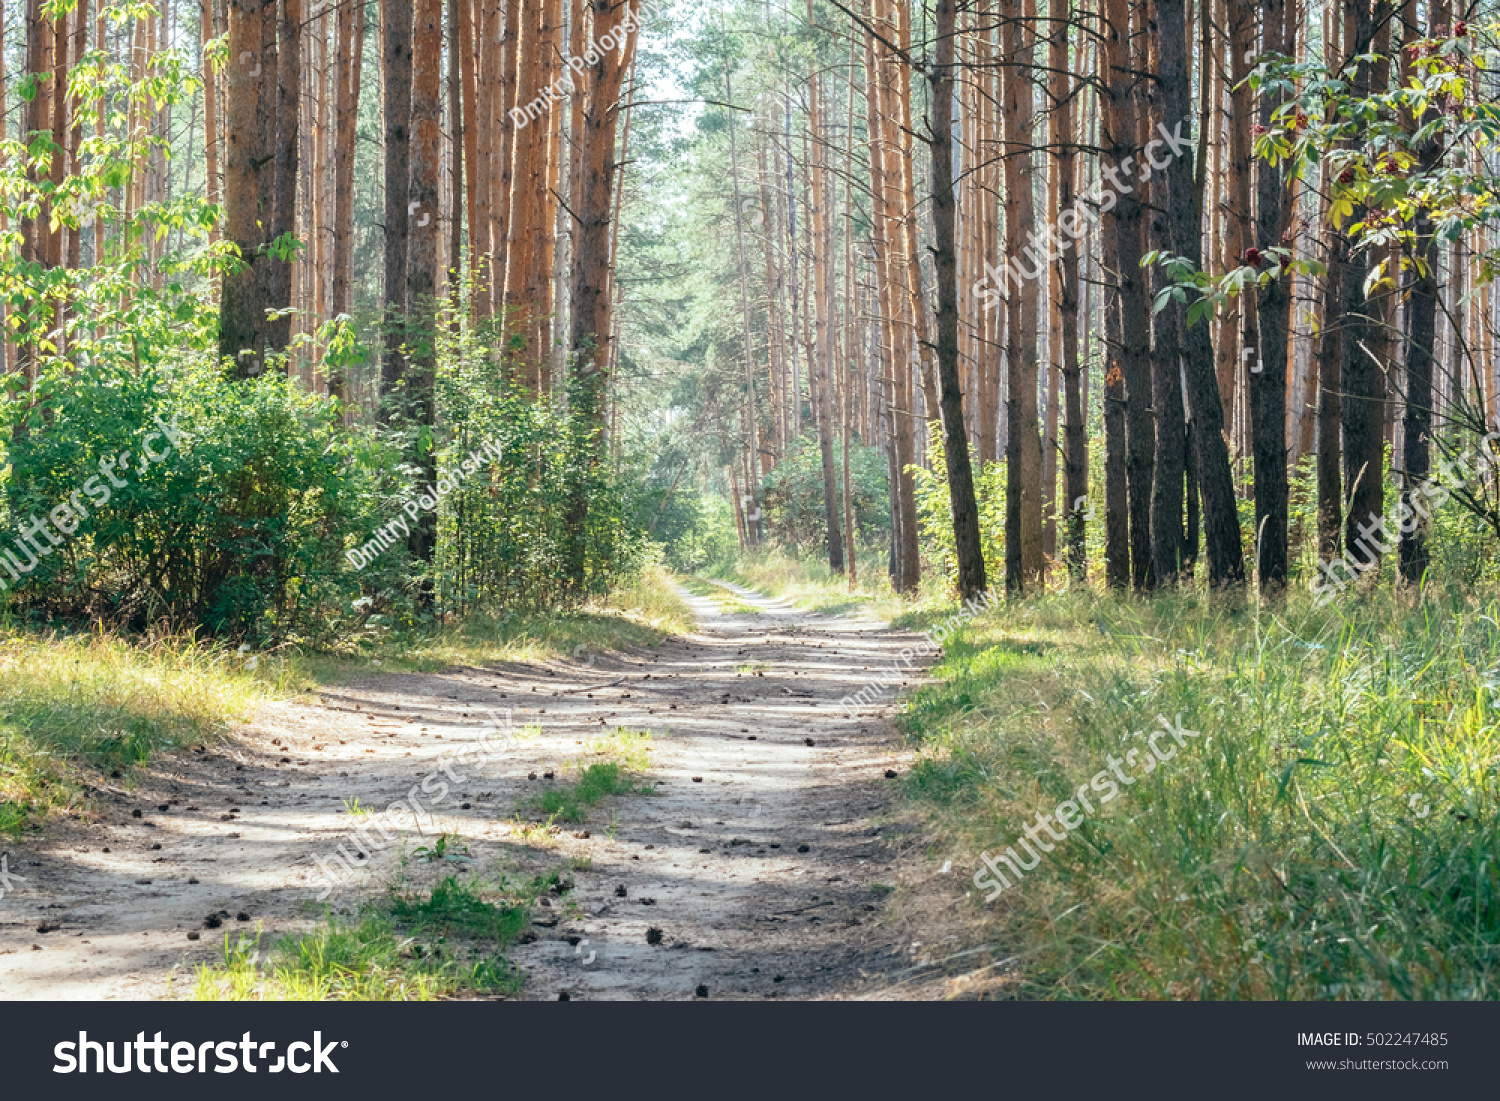 outdoor nature photography. Evergreen Pine Forest With Natural Walkway In Sunny Day Light. Outdoor Woods Nature Landscape Photography